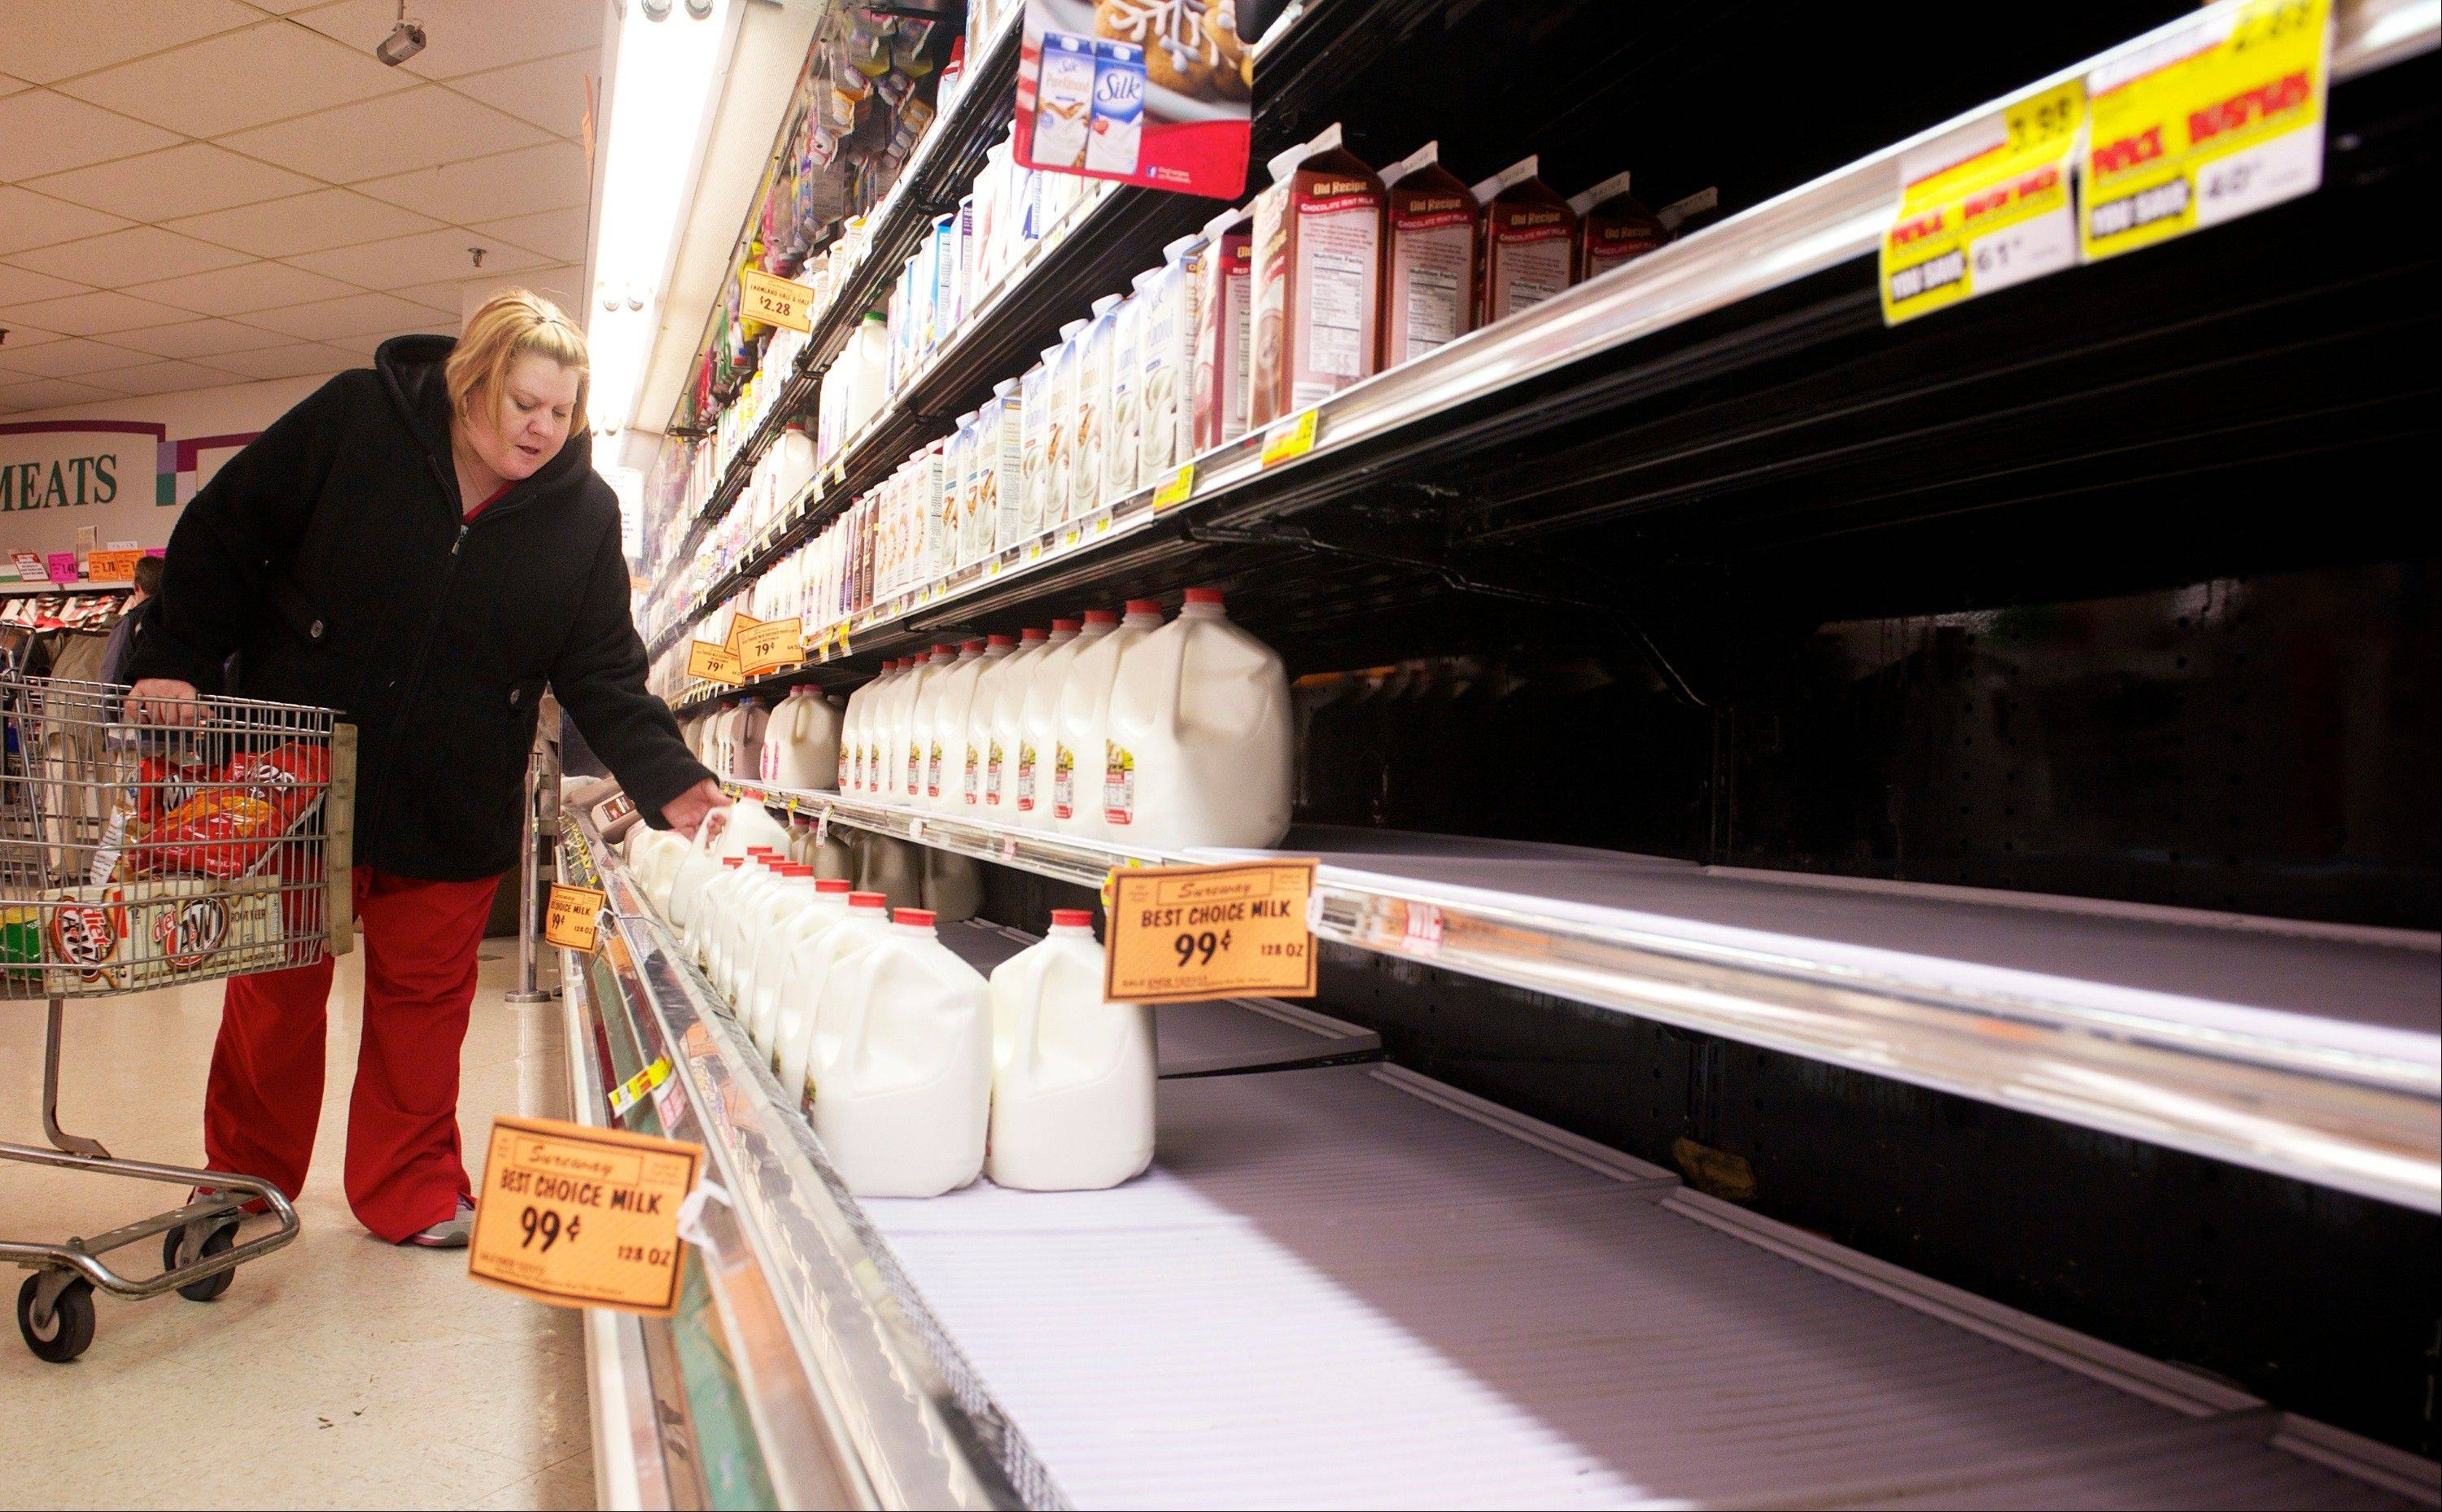 With the store shelves thinning out, Christie Wilson, Sebree, grabs a gallon of milk as shoppers at Sureway Eastgate, in Henderson, stock up before the forecasted blizzard hits late Christmas evening, Tuesday, Dec. 25, 2012.